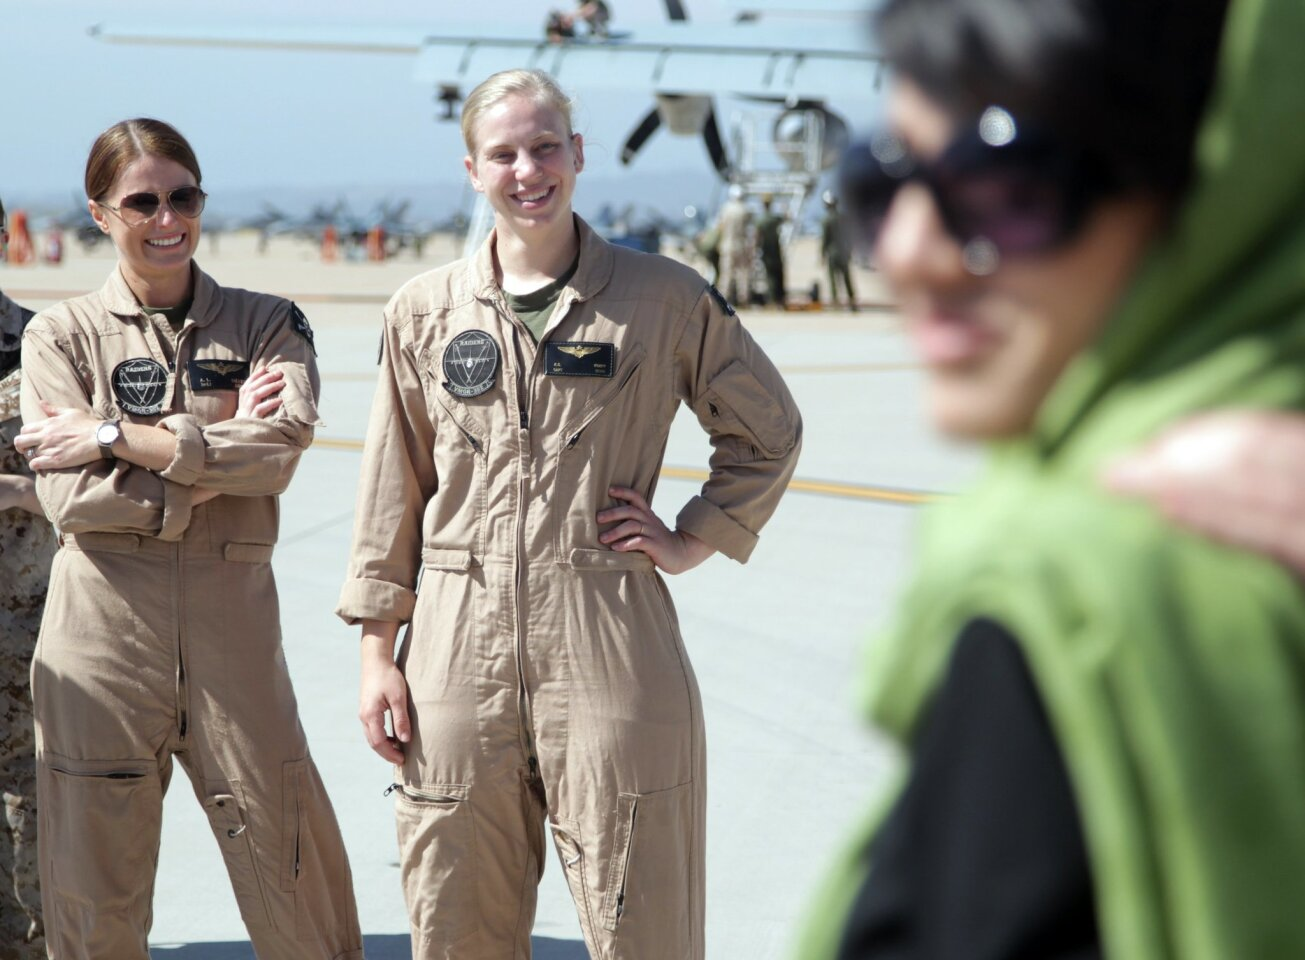 Captain Rahmani, the first Afghan female military fixed wing pilot, right, met with Miramar personnel like Marine 1st. Lt. Alisa Sieber, left and Marine Capt. K.C. Koepp.